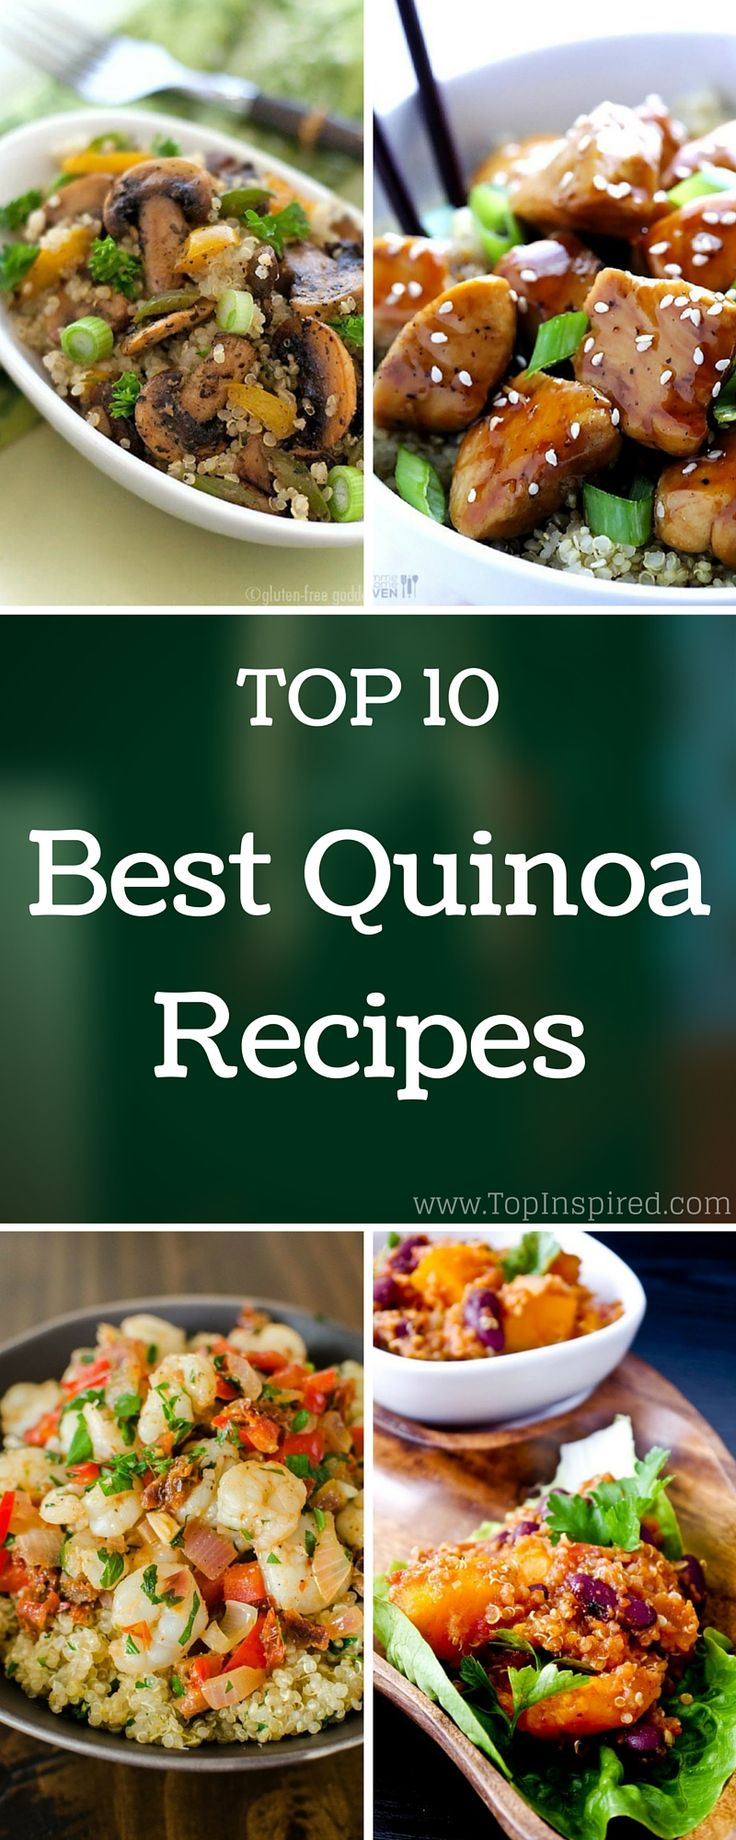 This delicious grain is high in protein and lacks gluten too, so, it is a perfect choice for everybody and it is good for every healthy diet. #Quinoa #Recipes